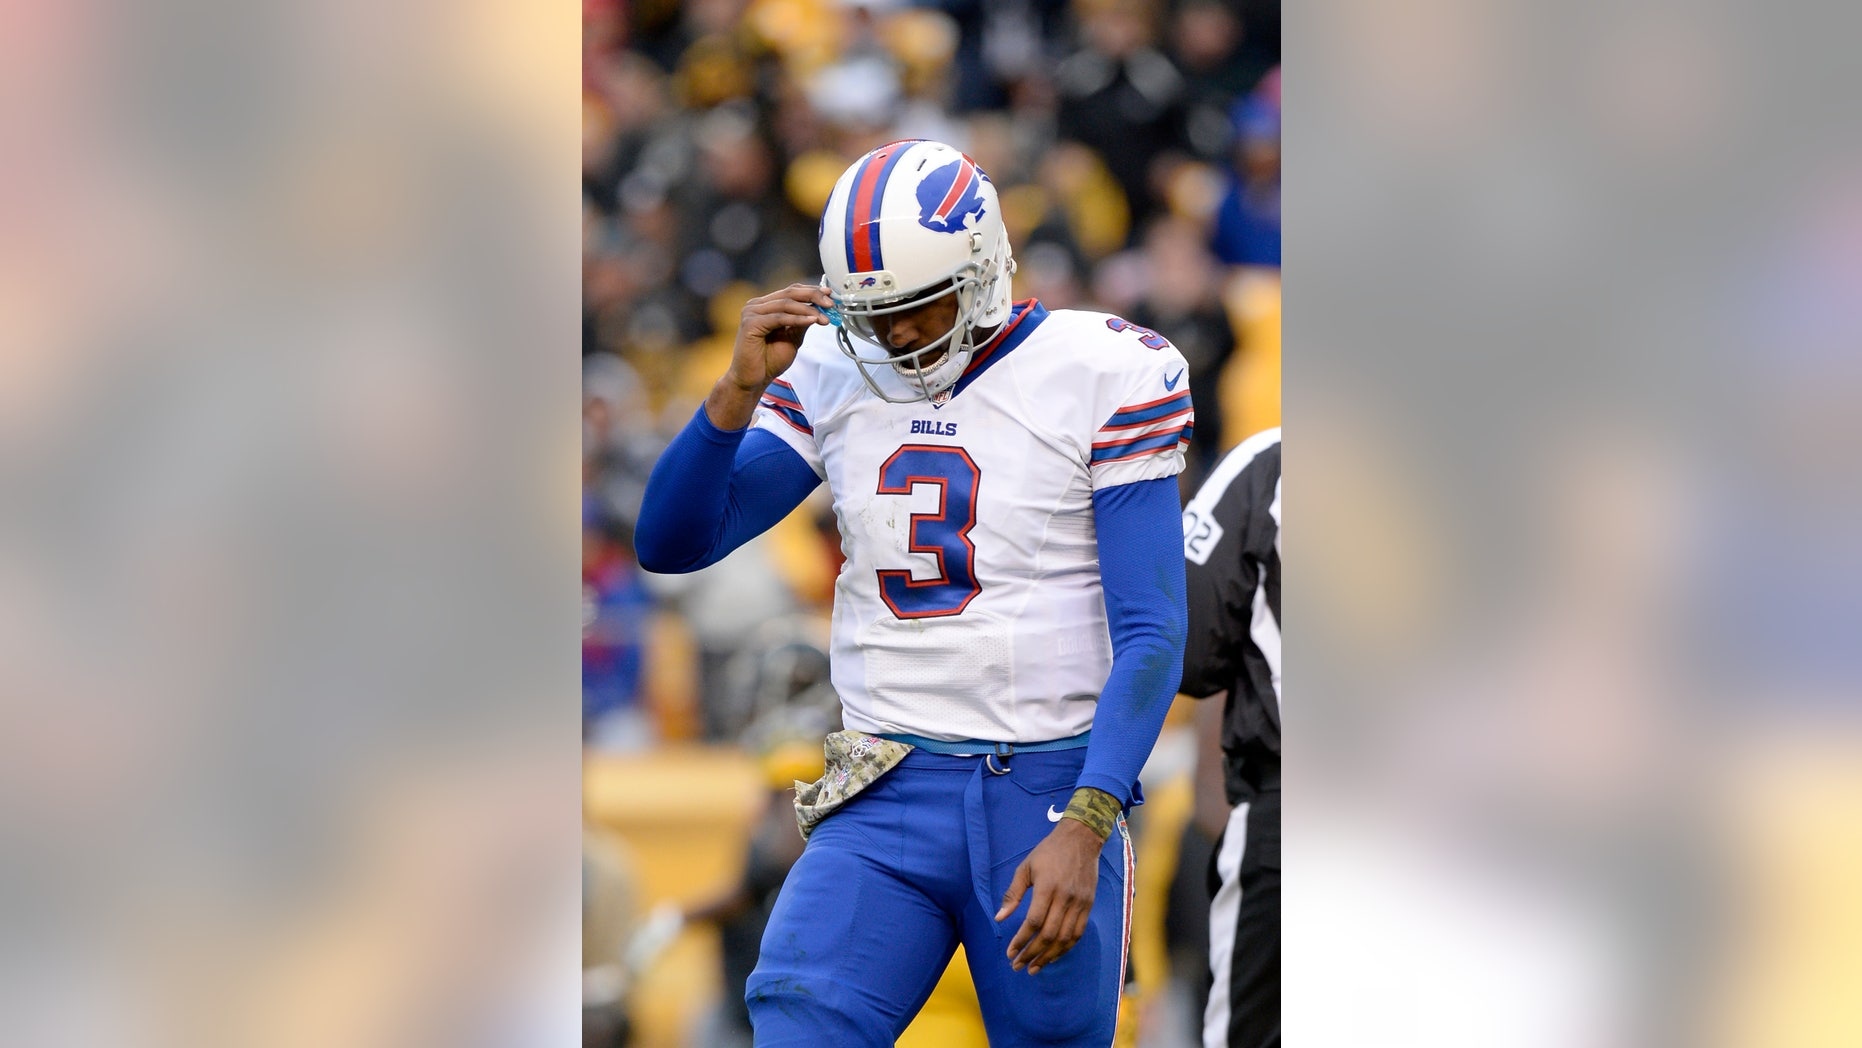 Buffalo Bills' EJ Manuel walks off the field after being tackled during the second half of an NFL football game against the Pittsburgh Steelers, Sunday, Nov. 10, 2013, in Pittsburgh. (AP Photo/Don Wright)